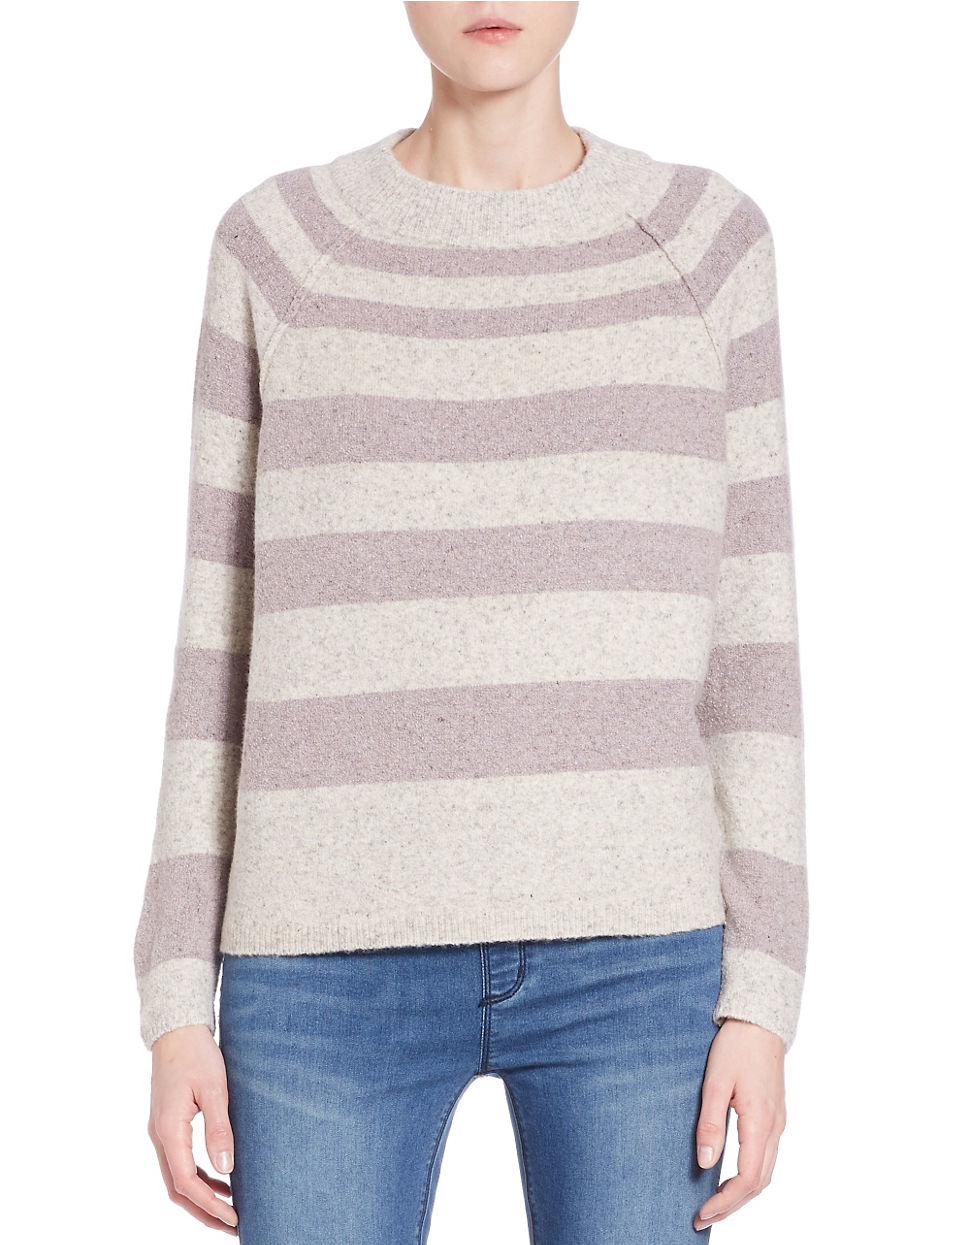 Free People Striped Knit Sweater In White Lyst